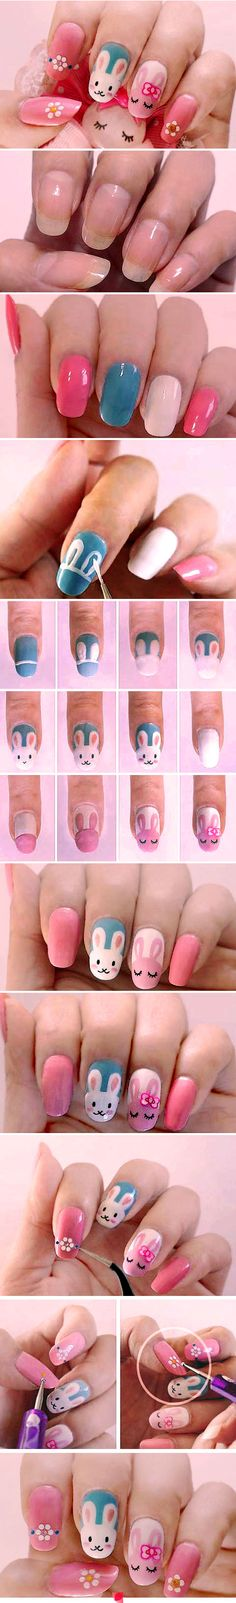 MendaBeauty wants to see everyone with cute nails this spring! Try this easy step-by-step DIY nail art tutorial featuring bunny rabbits. Perfect for upcoming Easter or an adorable base design for baby-shower bunnies. Happy ManiMonday!